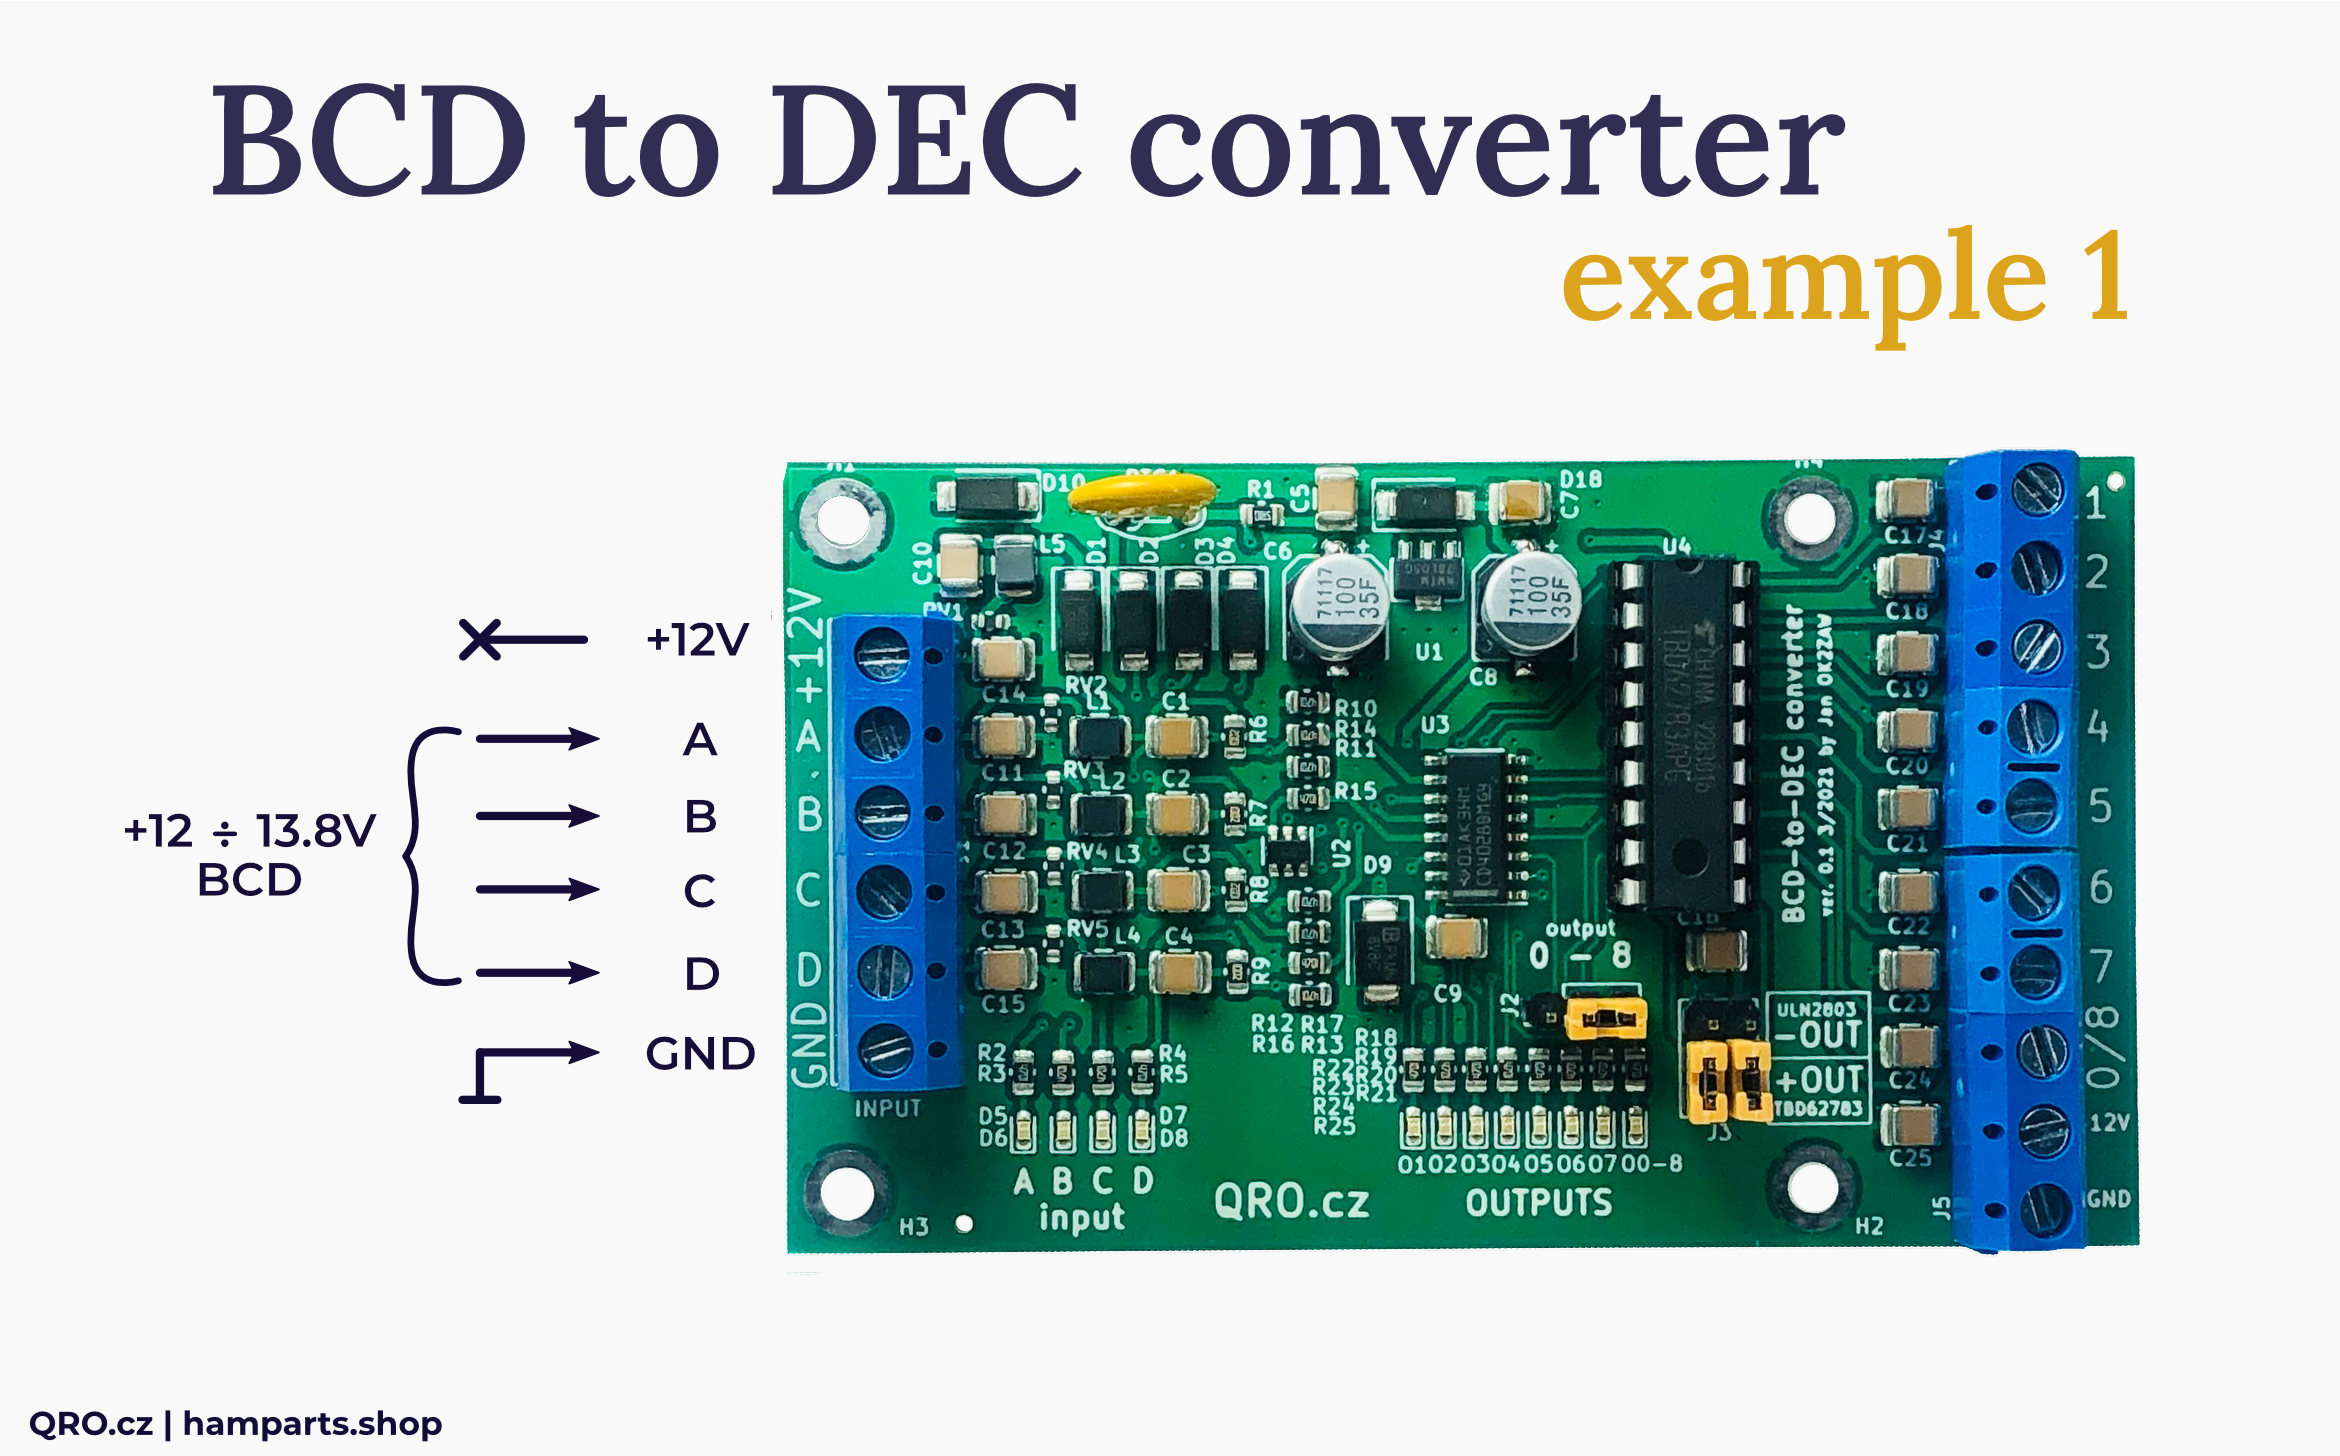 BCD to DEC converter connection example by qro.cz hamparts.shop